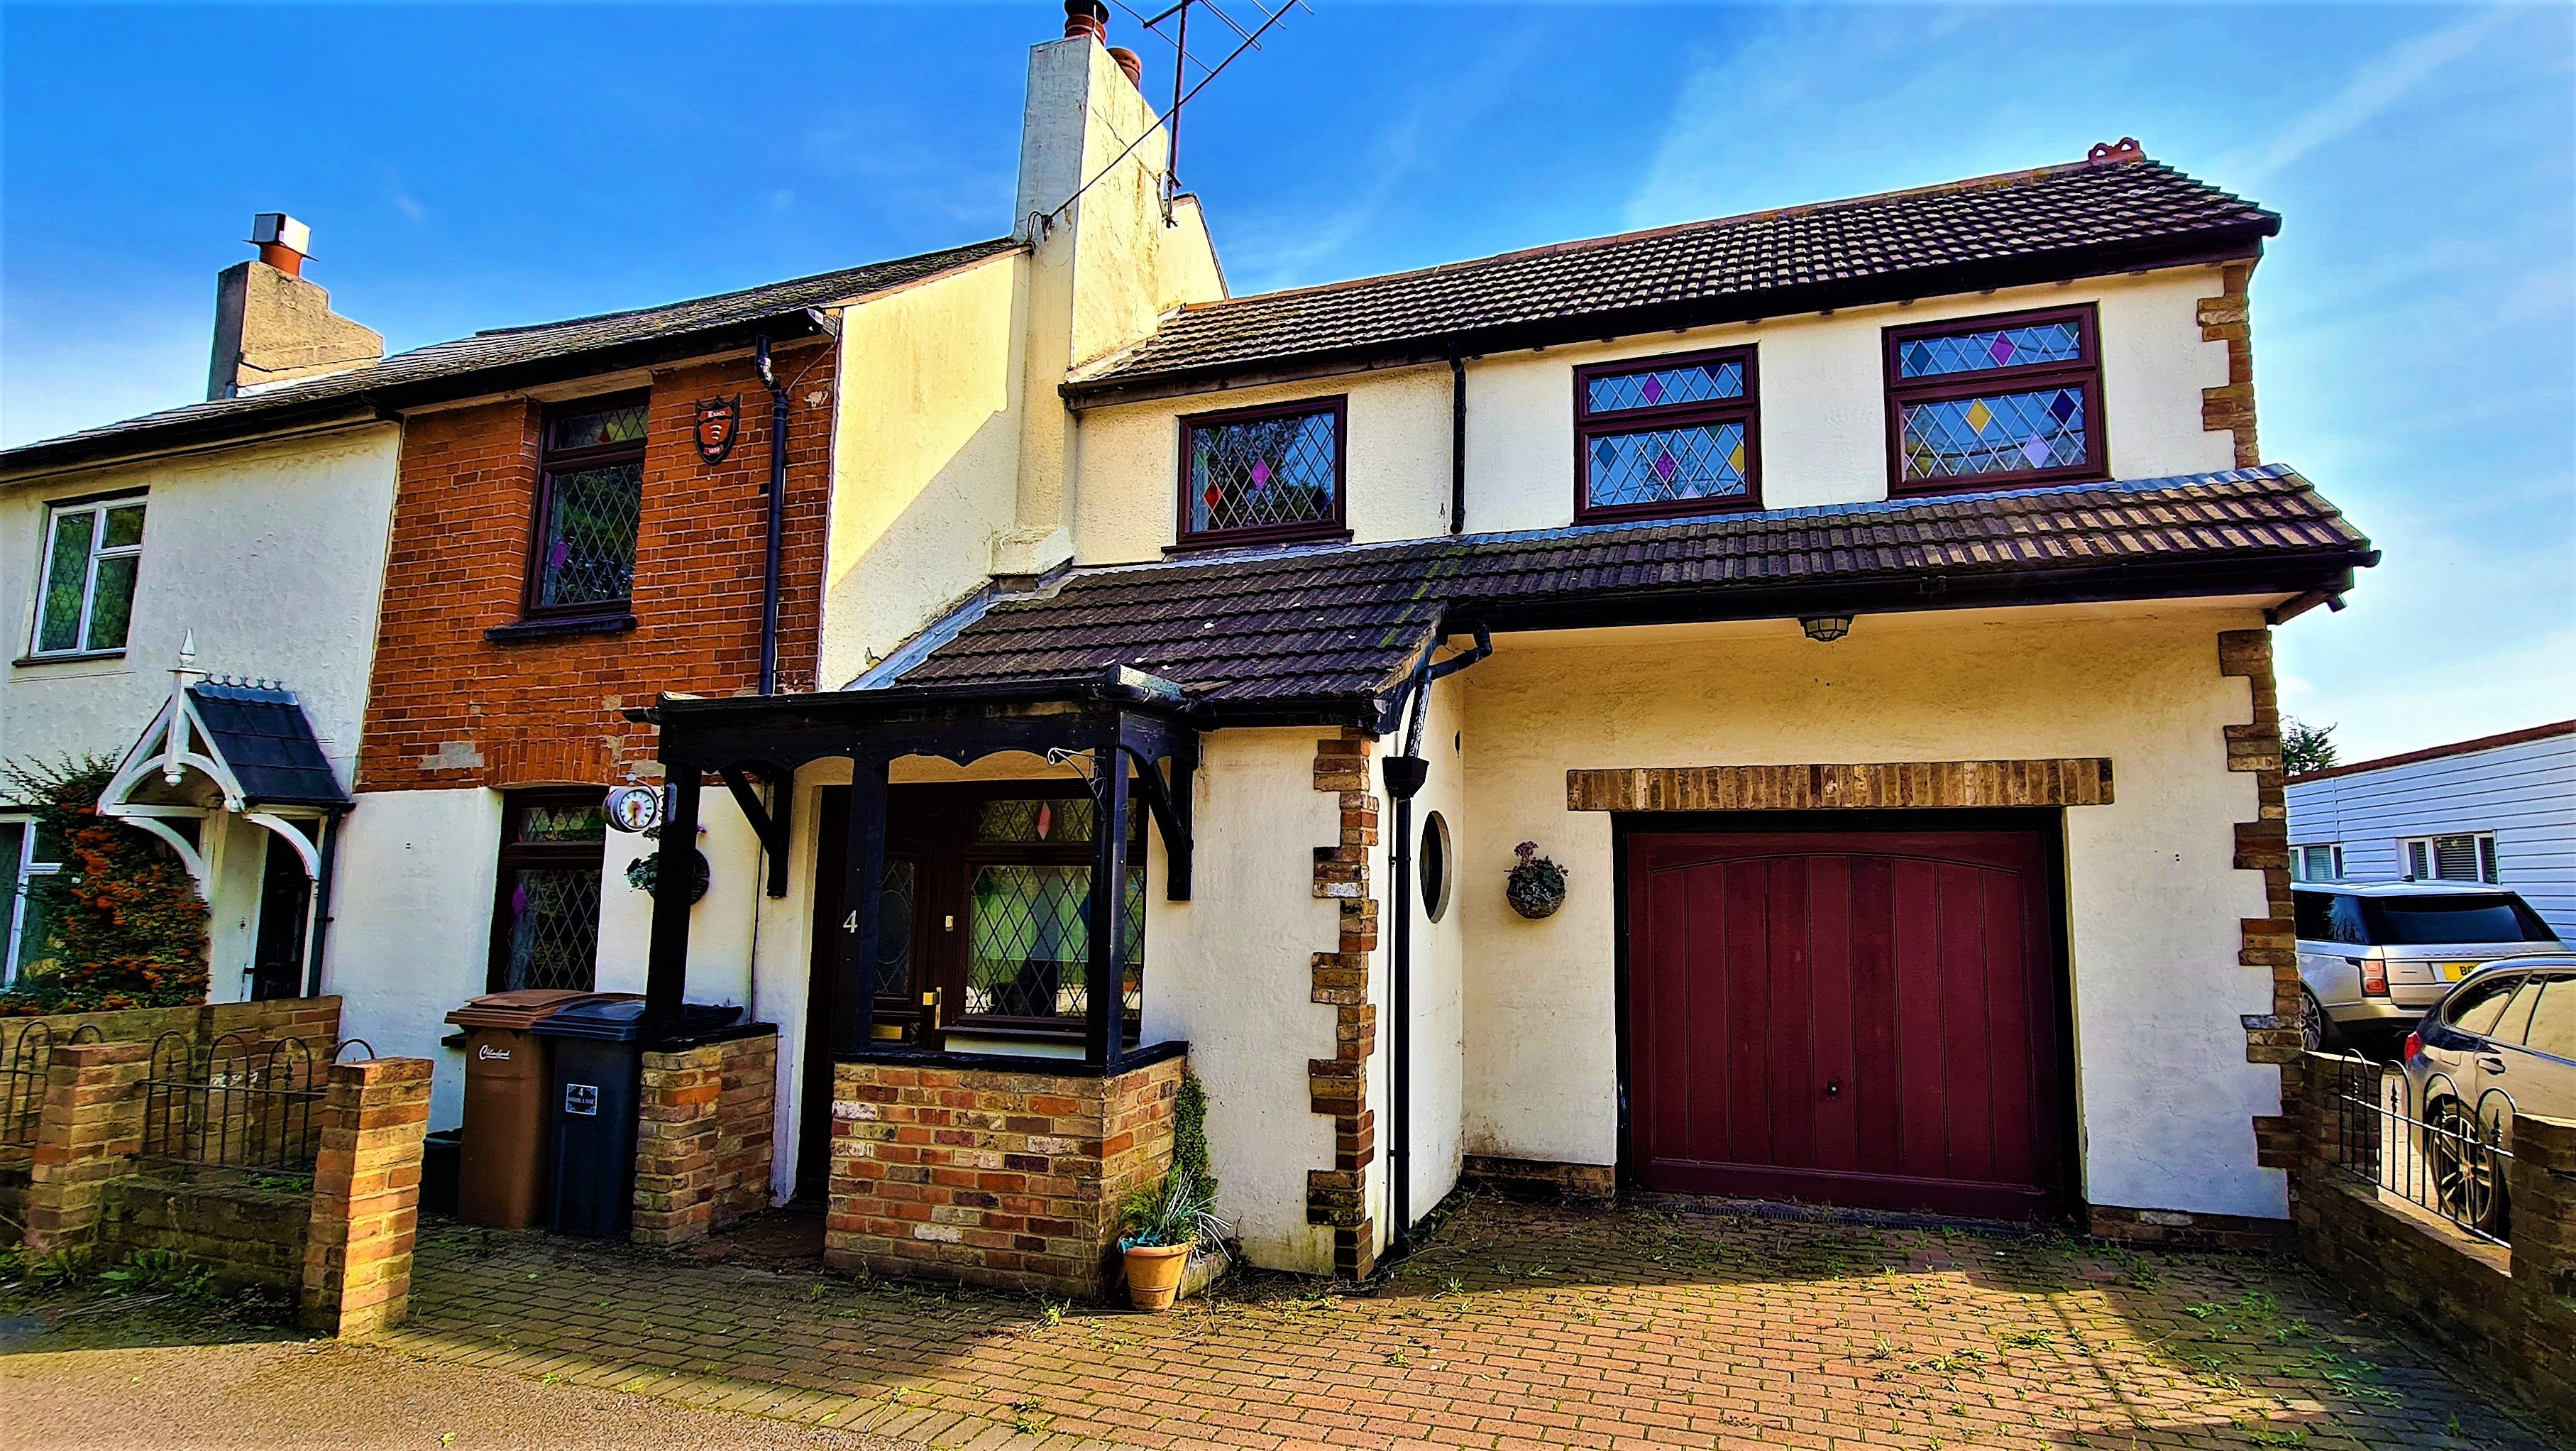 4 bed house for sale in Hawk Lane, Battlesbridge, SS11